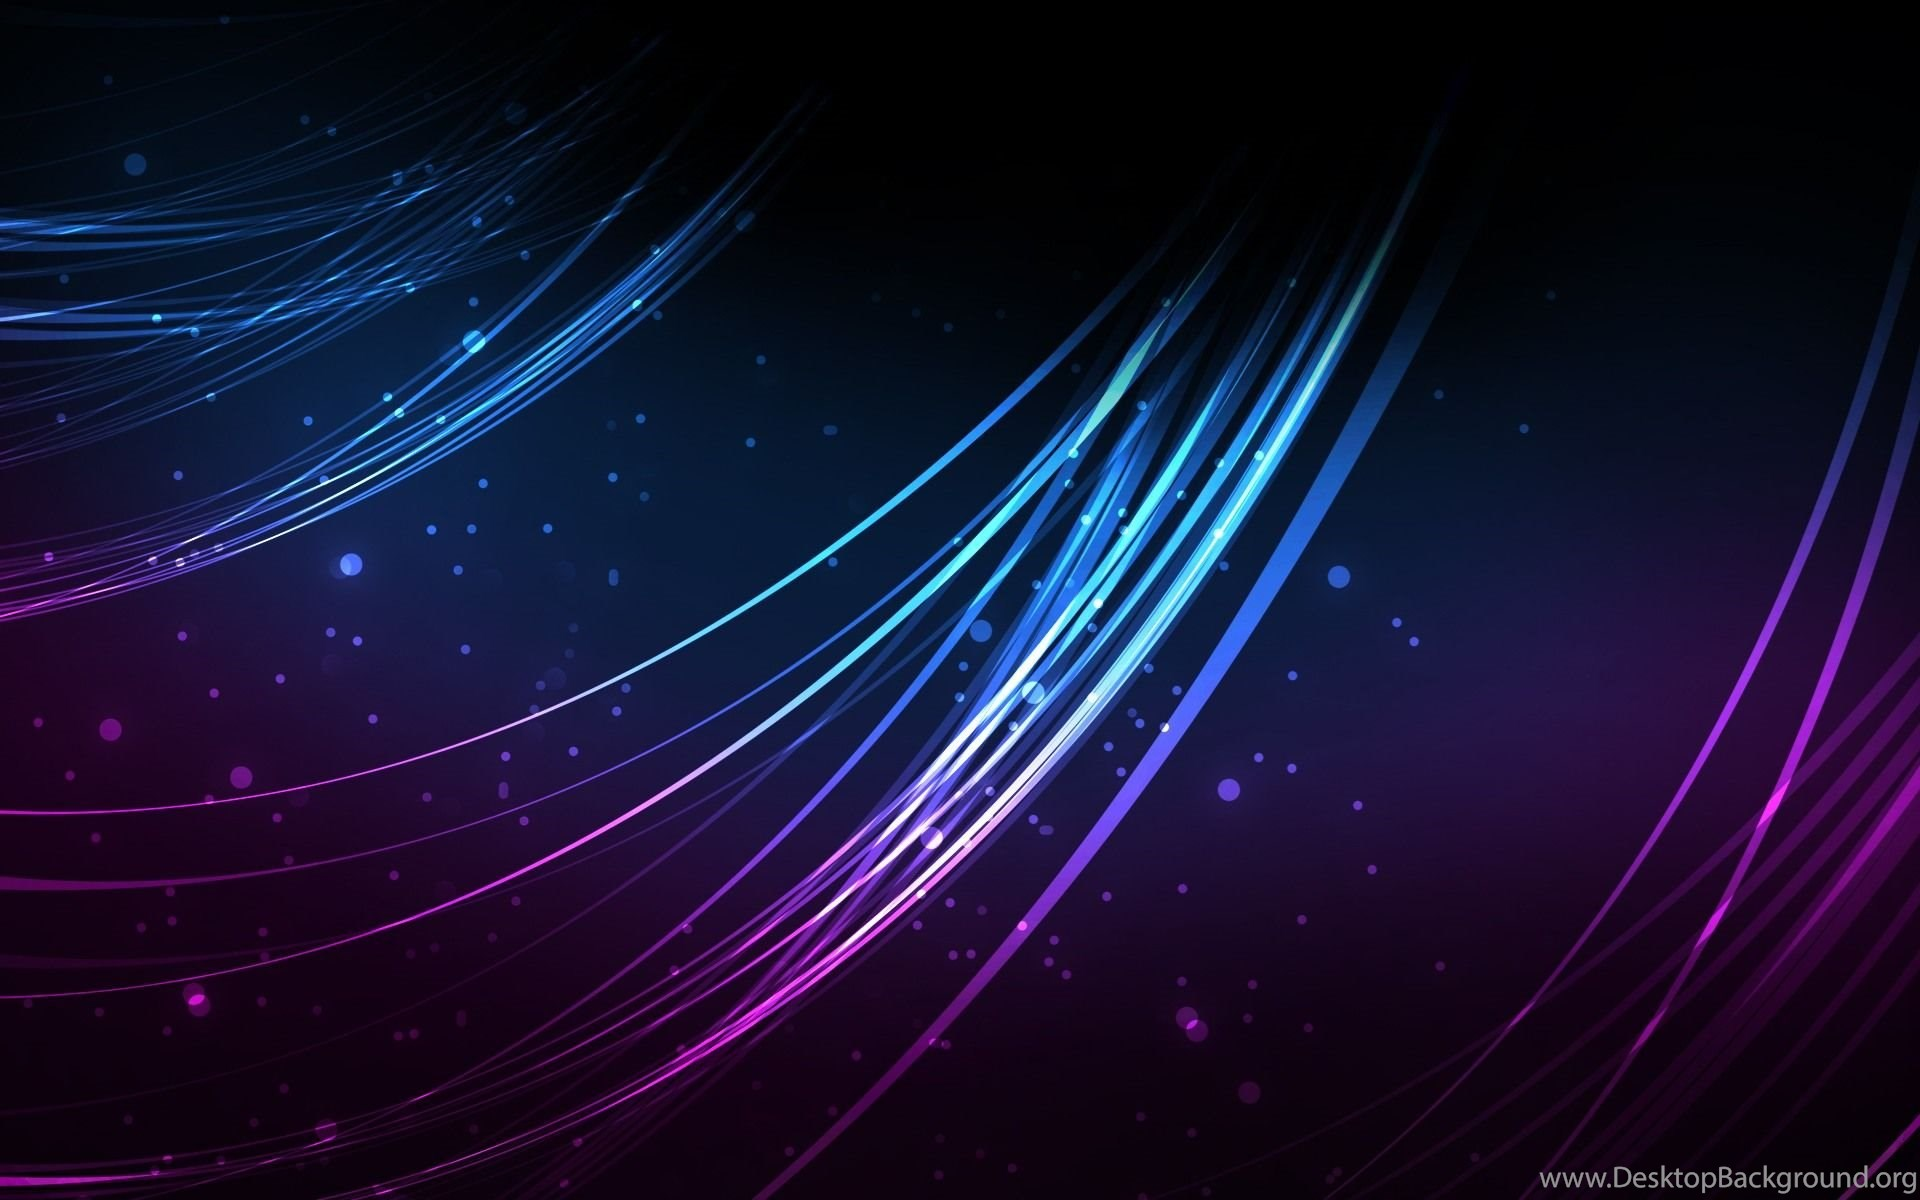 black and purple picture wallpapers 2399 hd wallpapers site desktop